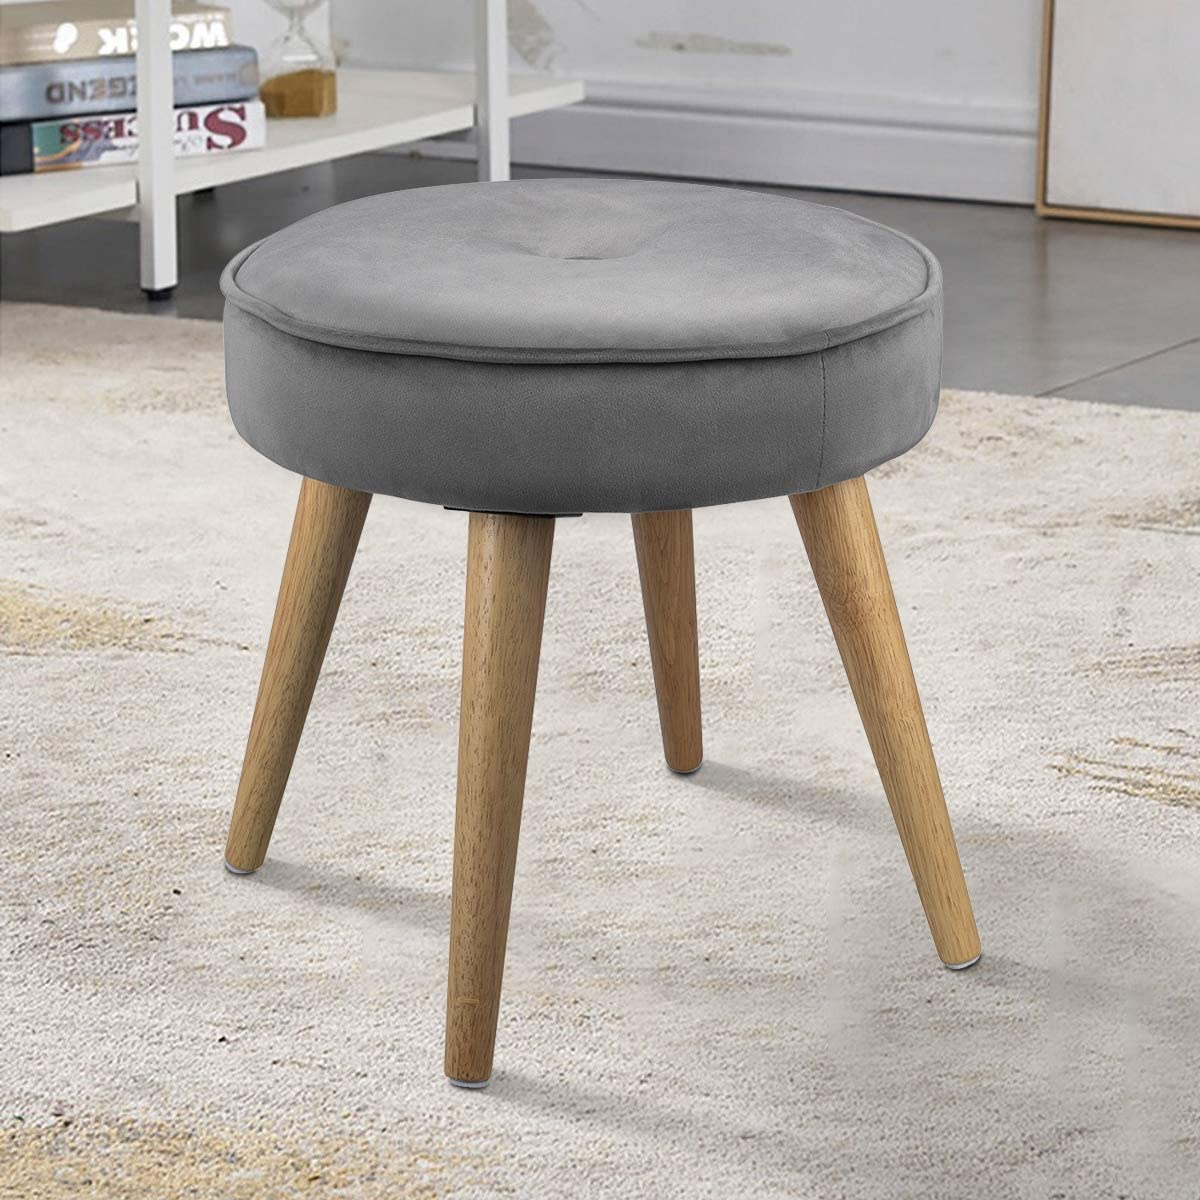 LINKLIFE Thick Padded Round Footrest Ottoman Stool Velvet Side Table Seat, Makeup Dressing Stool with Wooden Legs for Living Room, Bedroom, Small Space Room, Office Grey